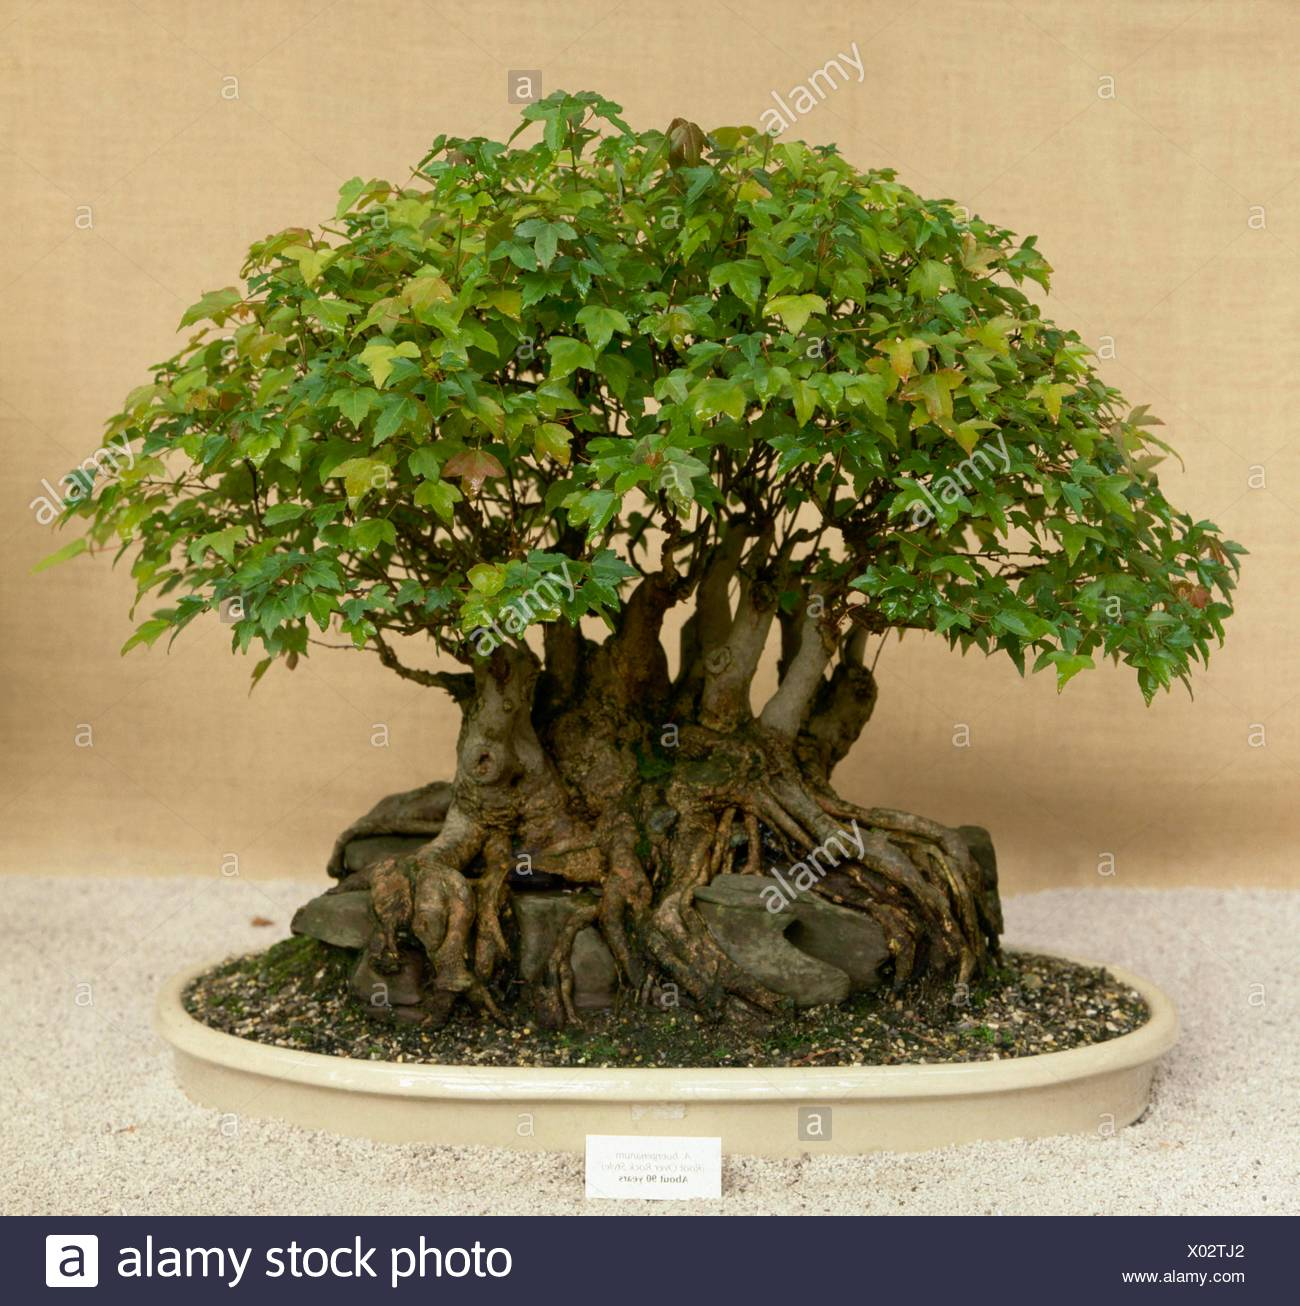 Acer Bonsai Stock Photos Acer Bonsai Stock Images Alamy